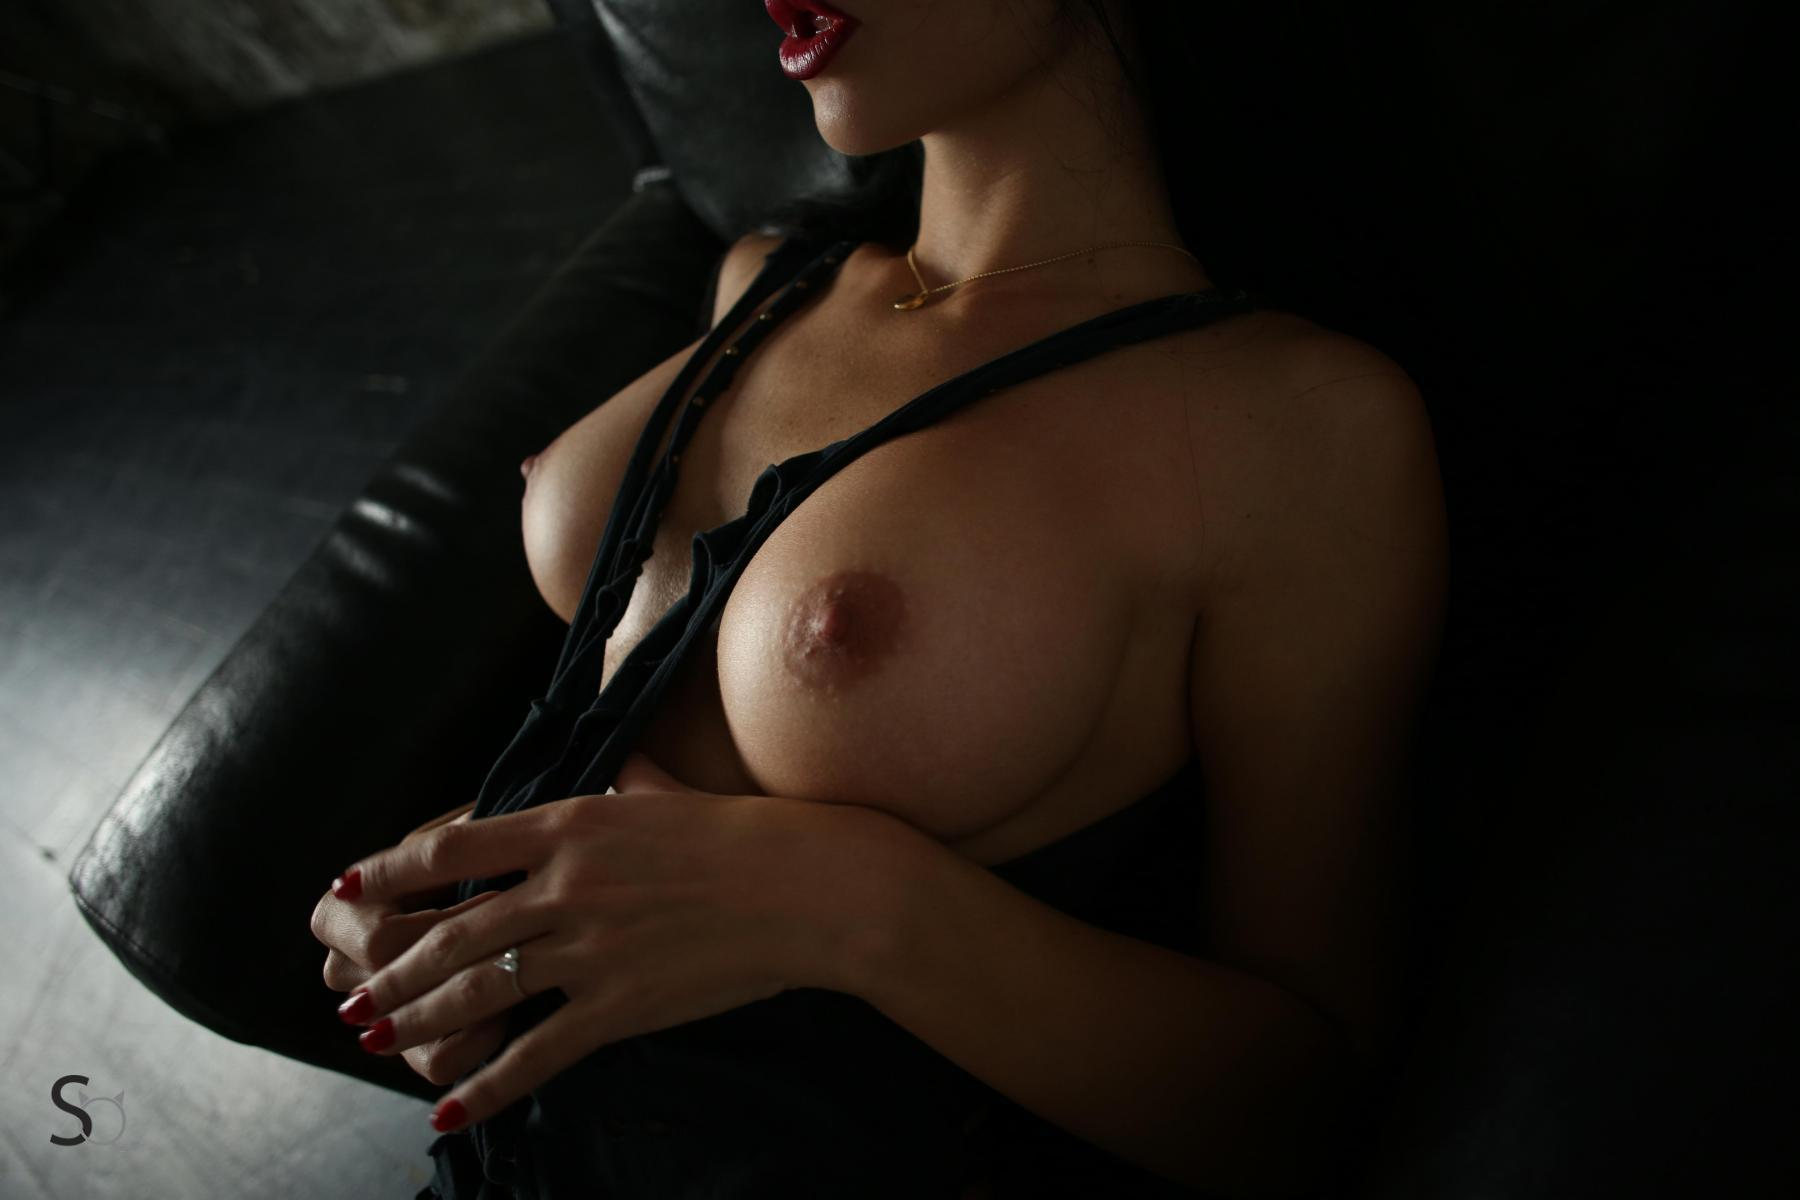 Yana Sexy Brunette's Tits Porn OnlyFans Leaked Nudes 34